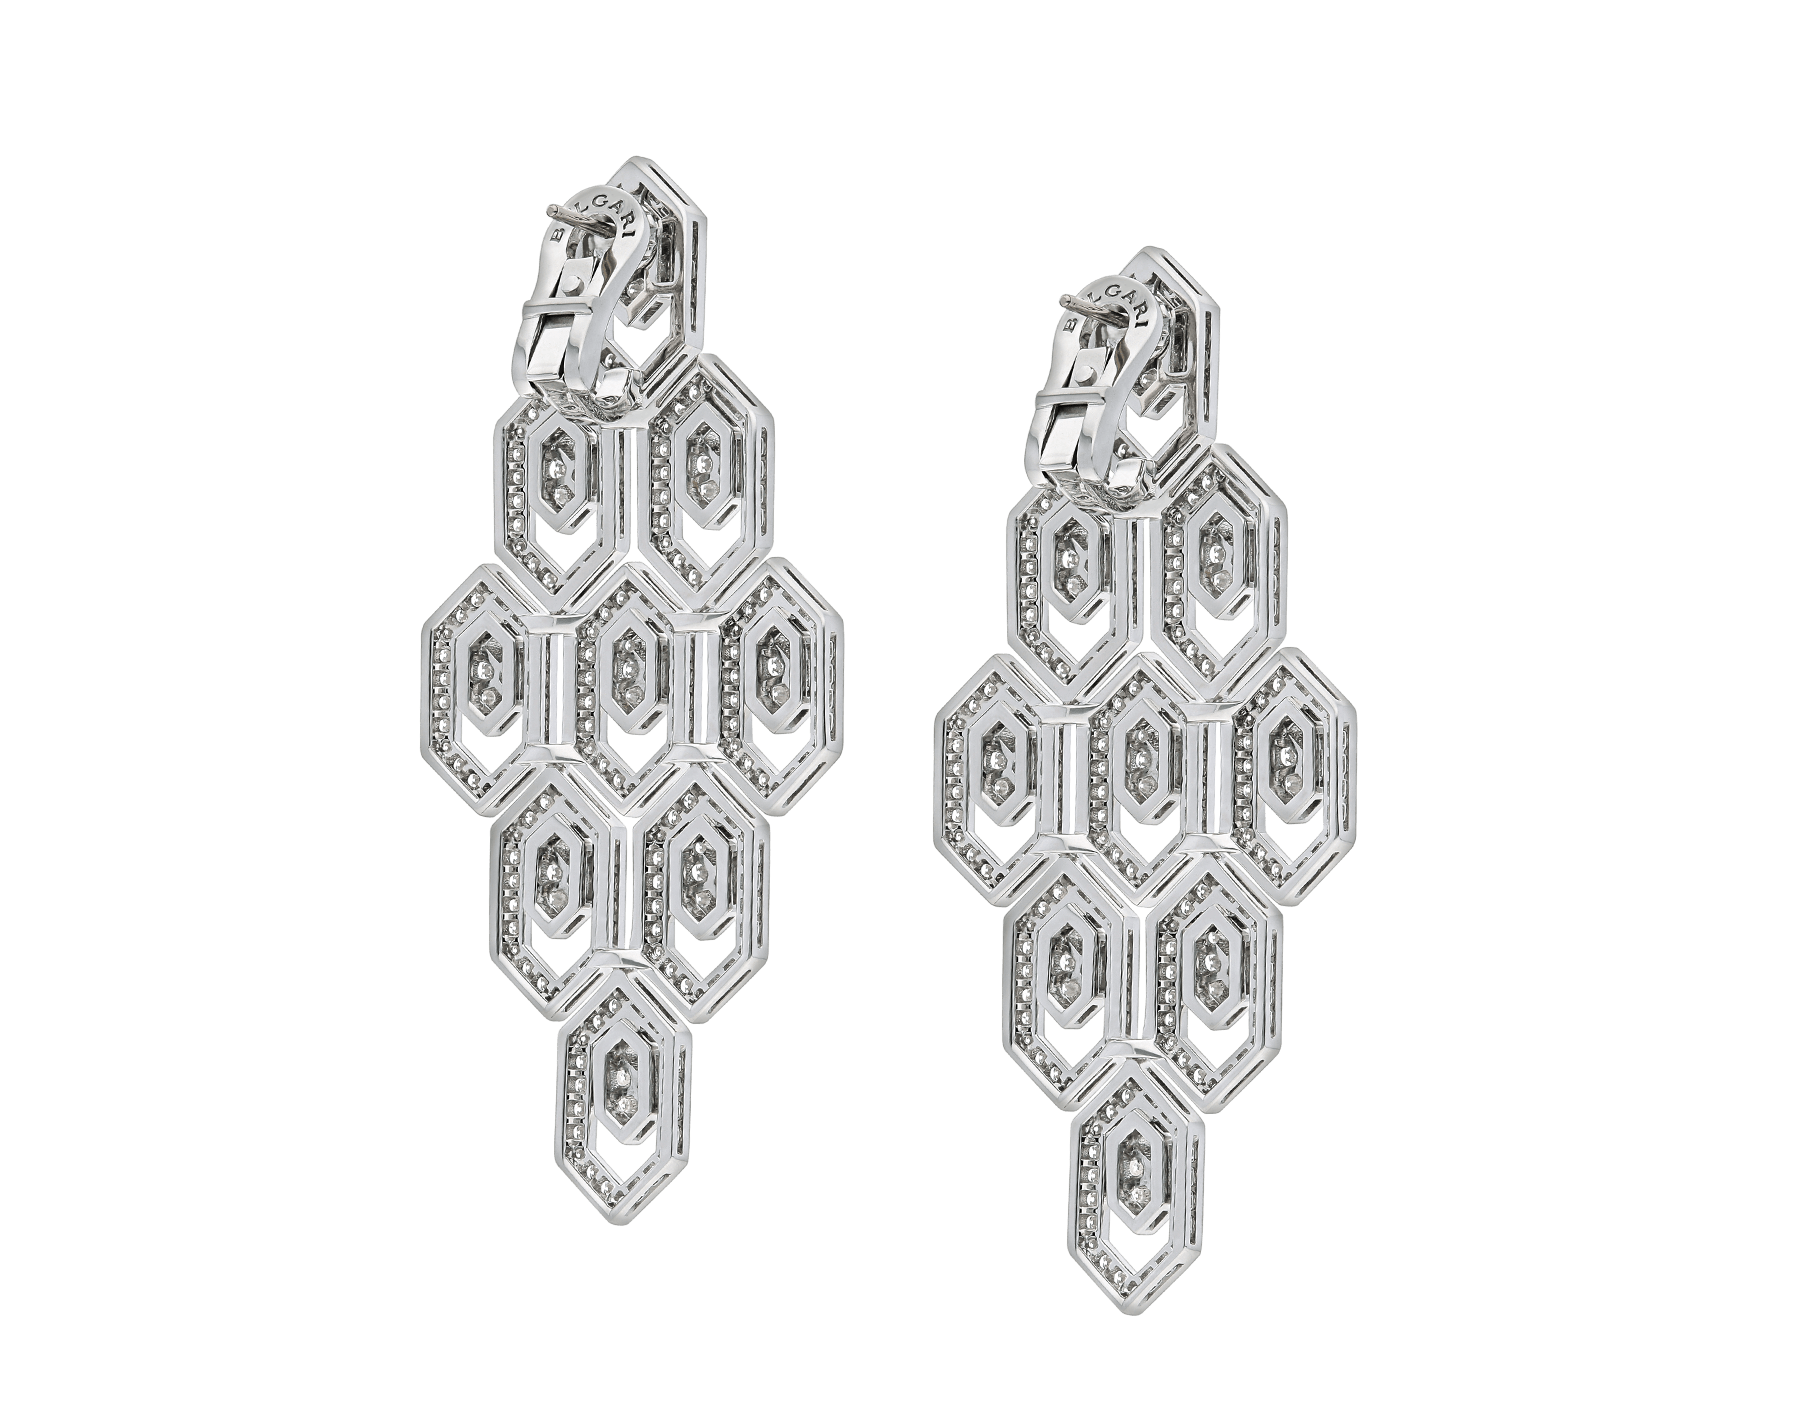 Serpenti earrings in 18 kt white gold, set with pavé diamonds. 353844 image 3